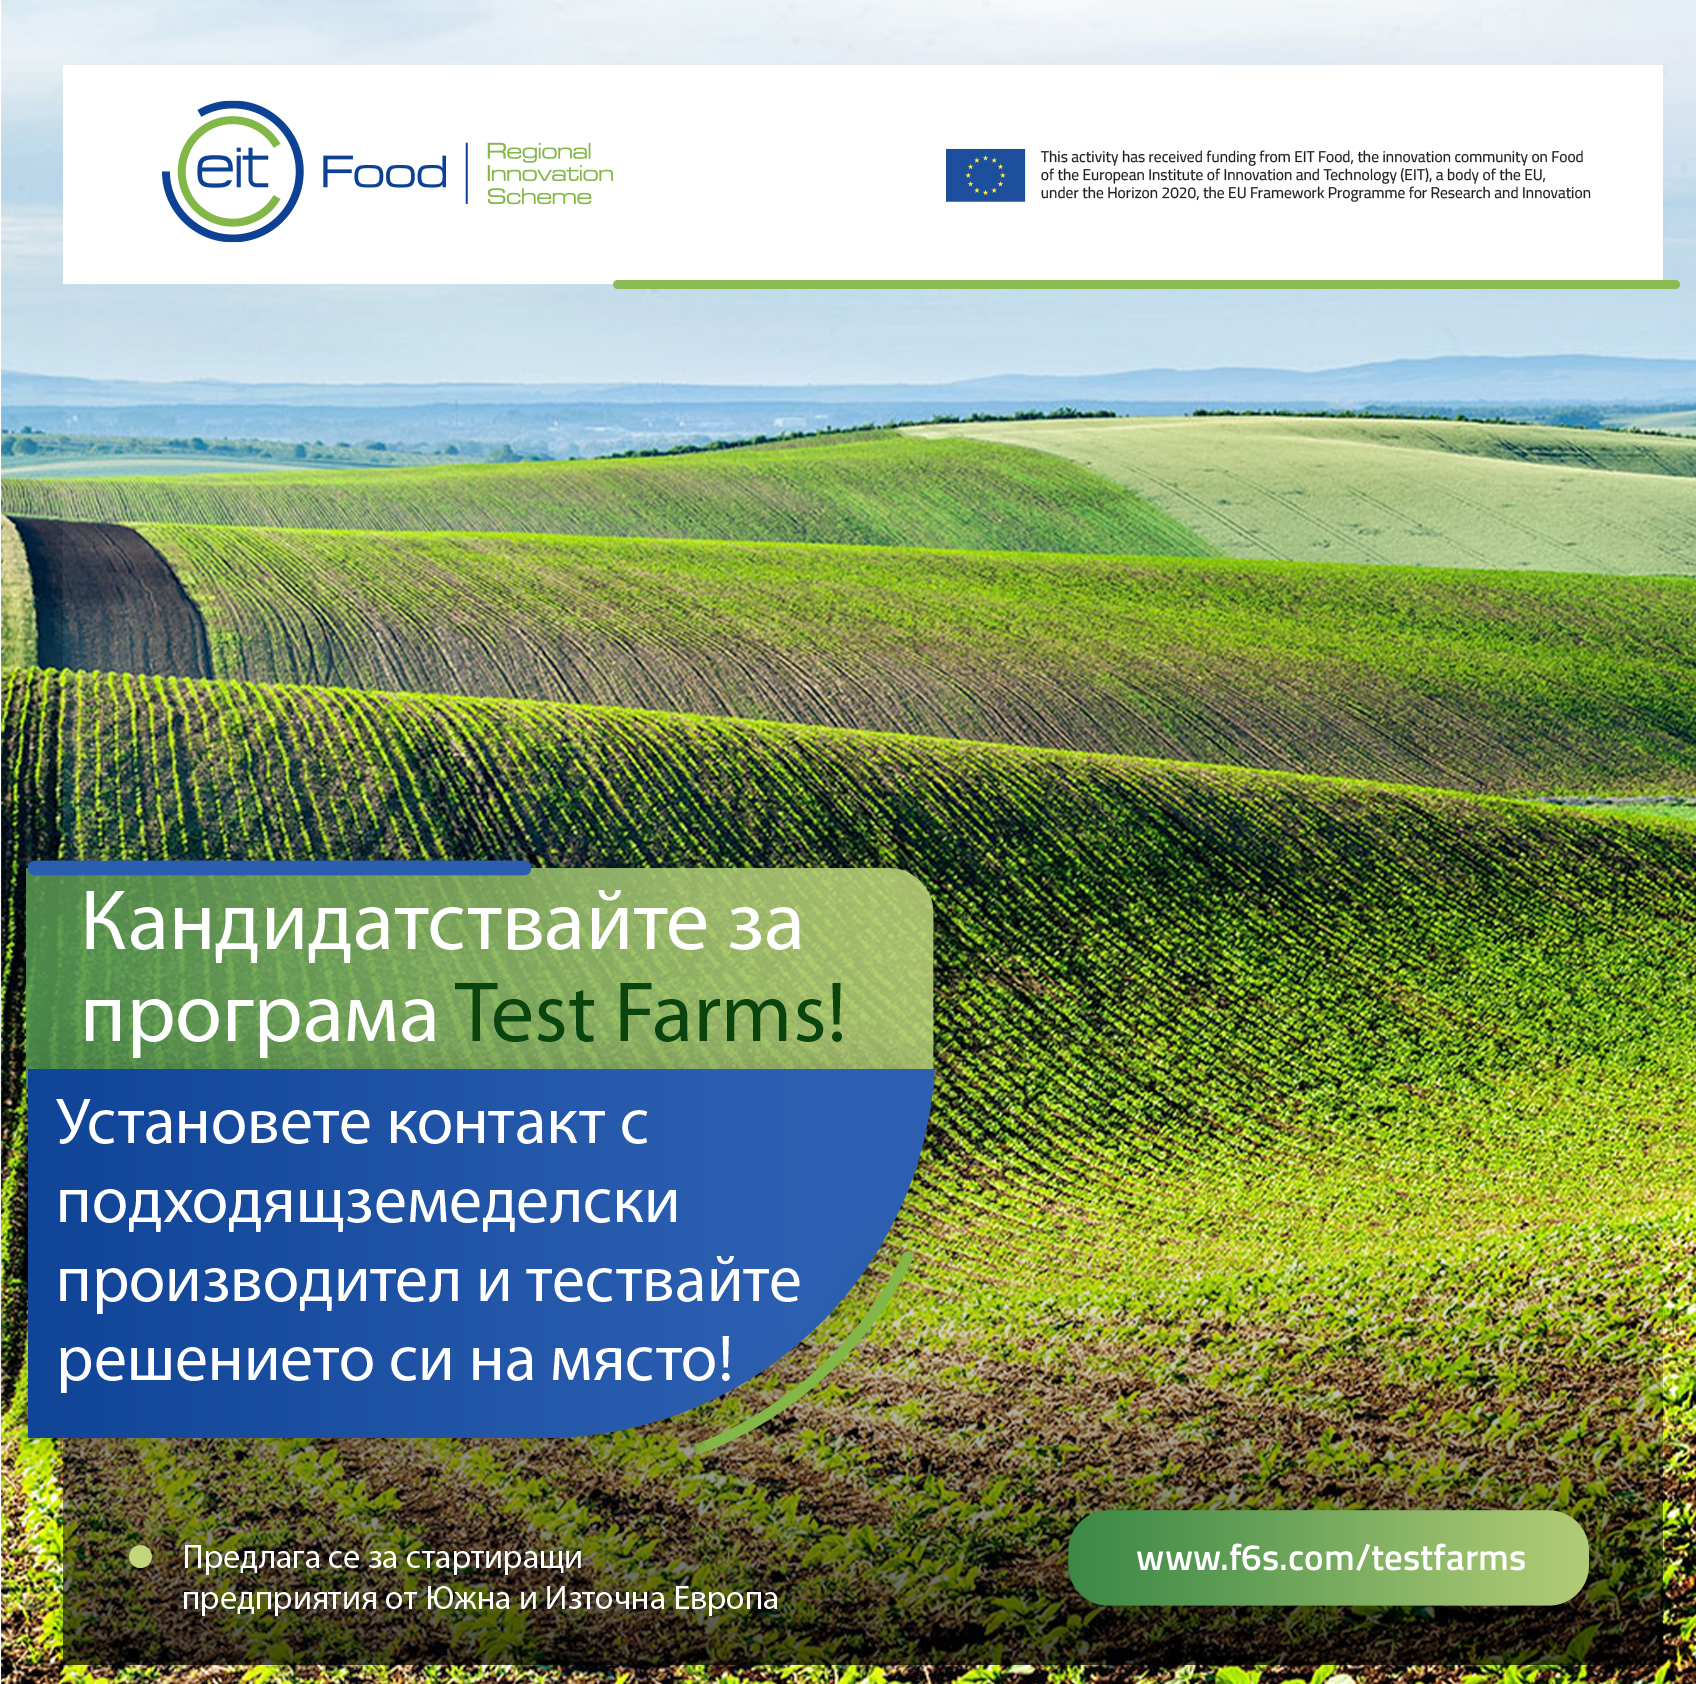 Test Farms: opportunity to test innovative products or services with farmers